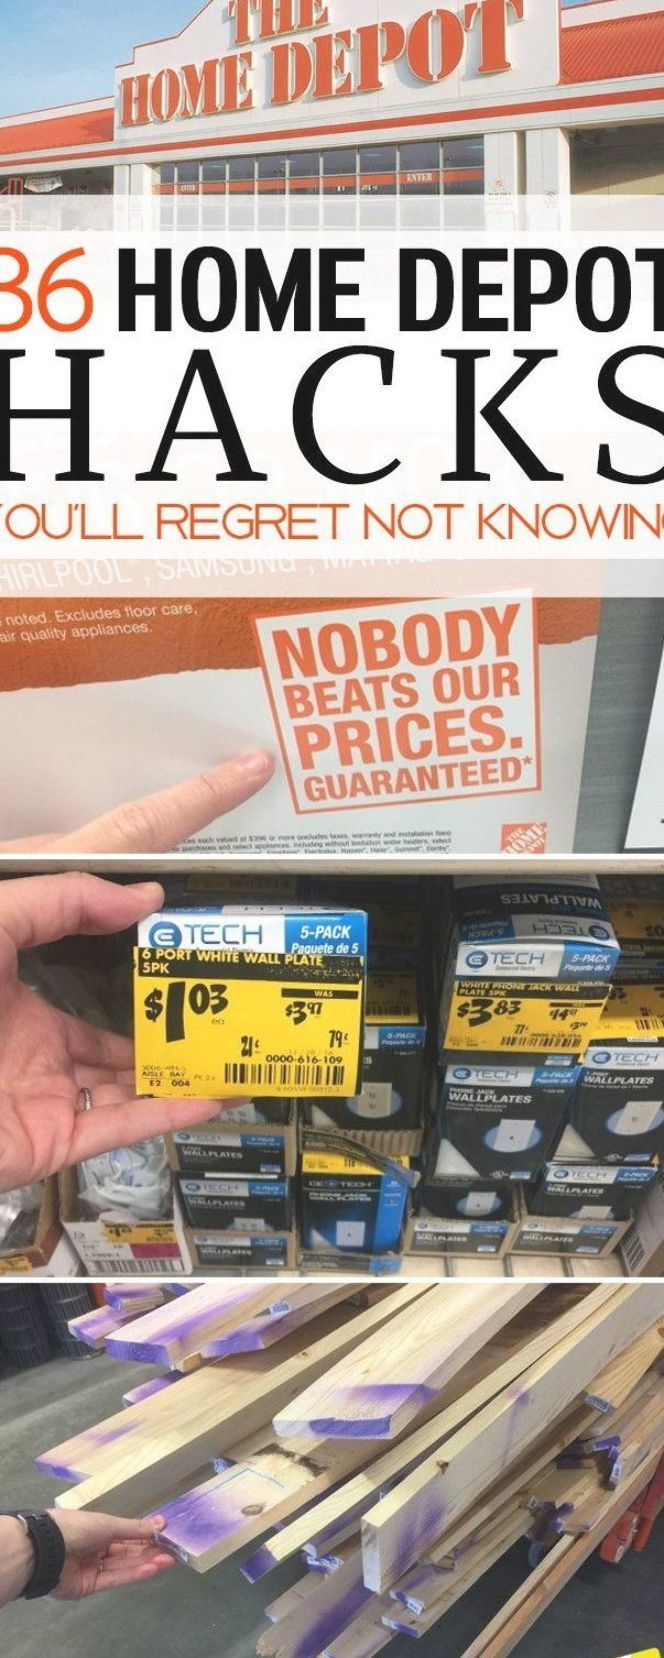 When you shop at Home Depot with this strategy, you'll